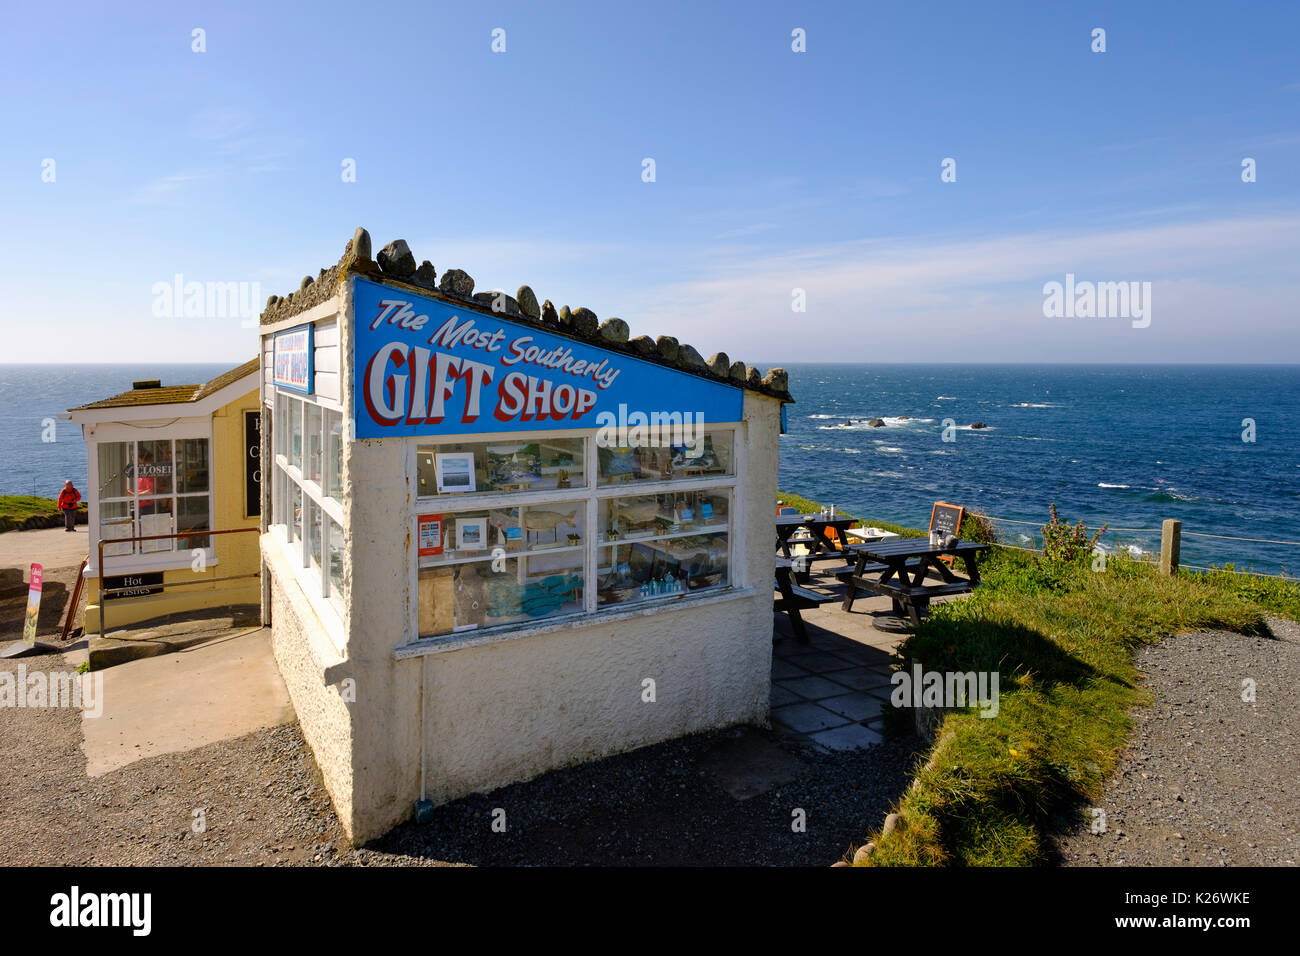 The Most Southerly Gift Shop, Lizard Point, Lizard Peninsula, Cornwall, England, United Kingdom - Stock Image